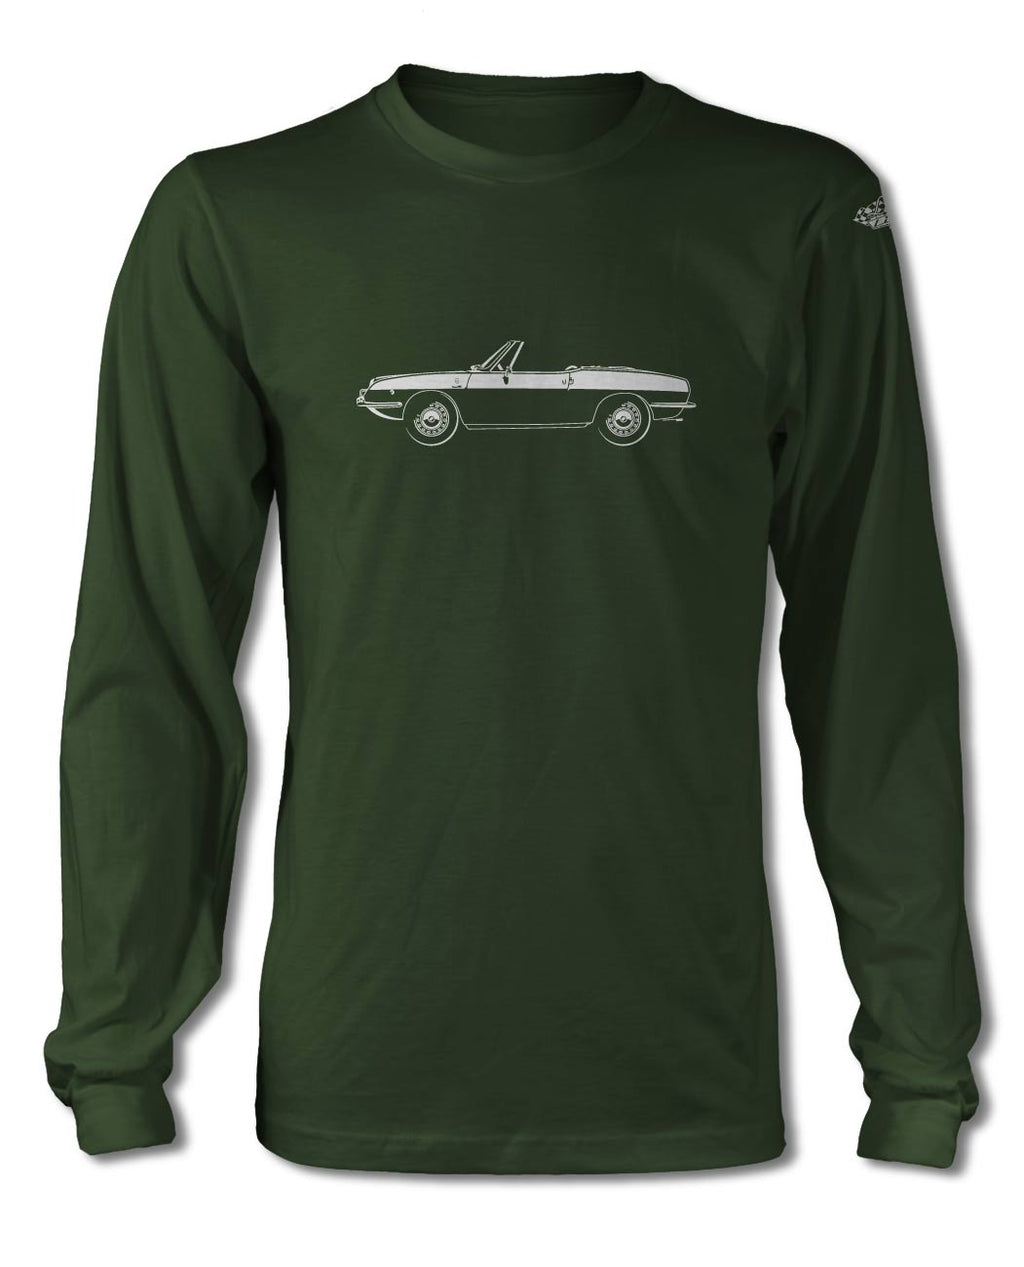 Fiat 850 Convertible Spider T-Shirt - Long Sleeves - Side View